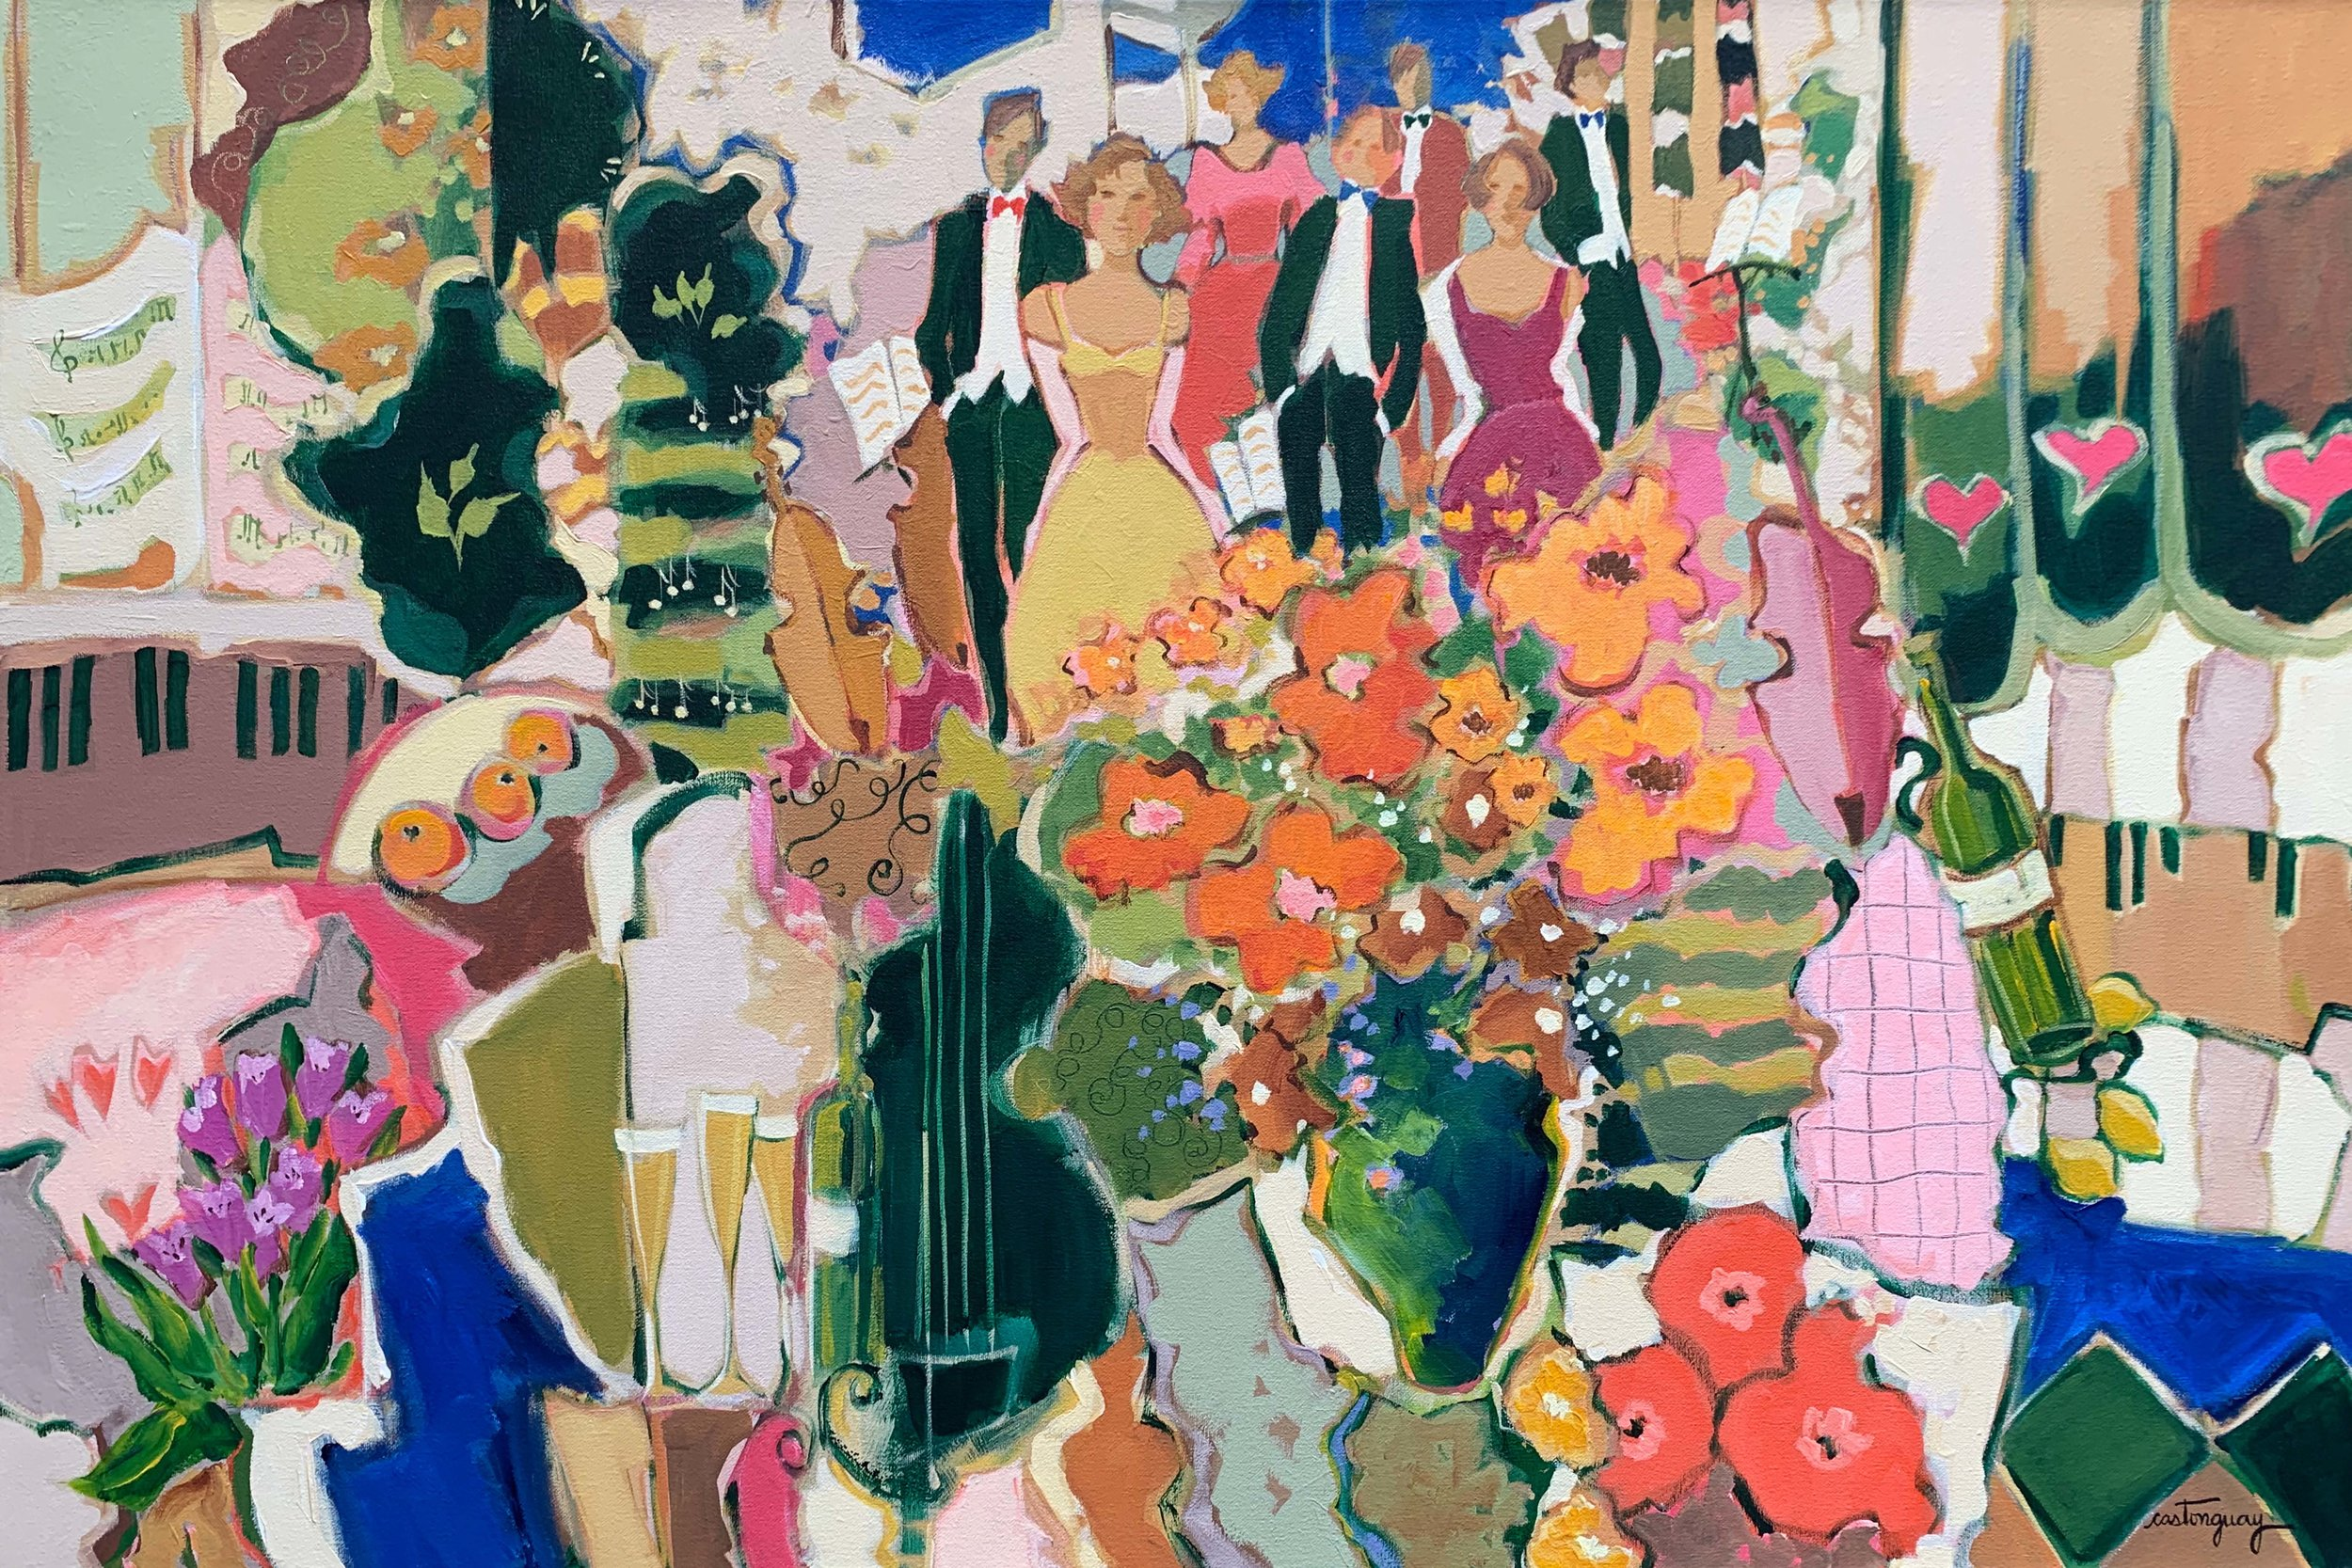 L' Heure Exquise  acrylic on canvas, 36 x 24 in.